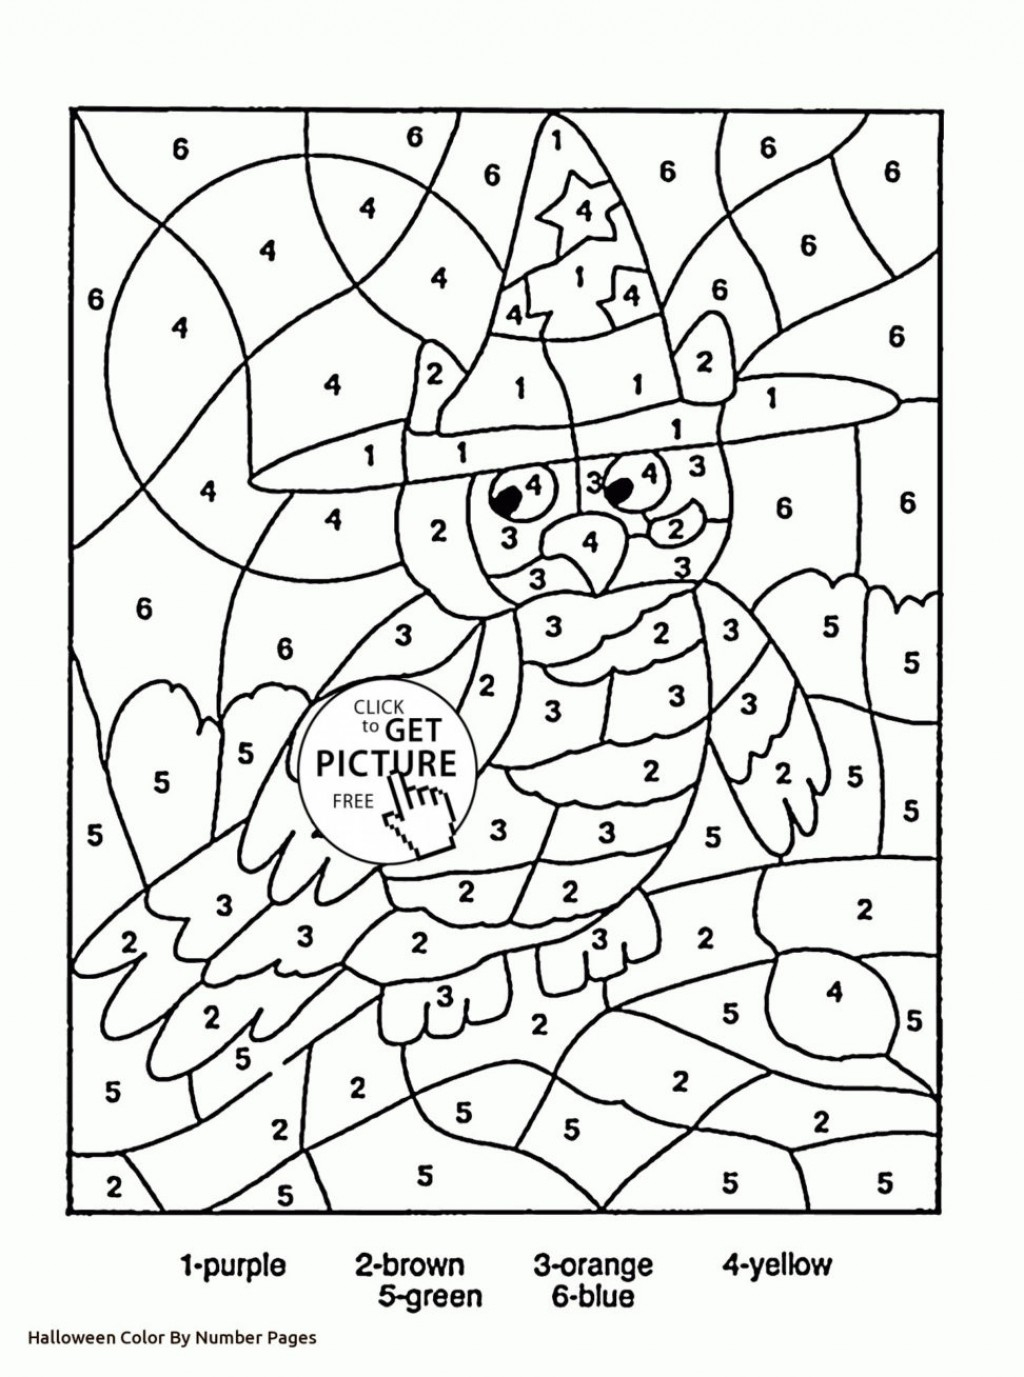 Coloring Pages Color Number Printableg Pages C0lor Math